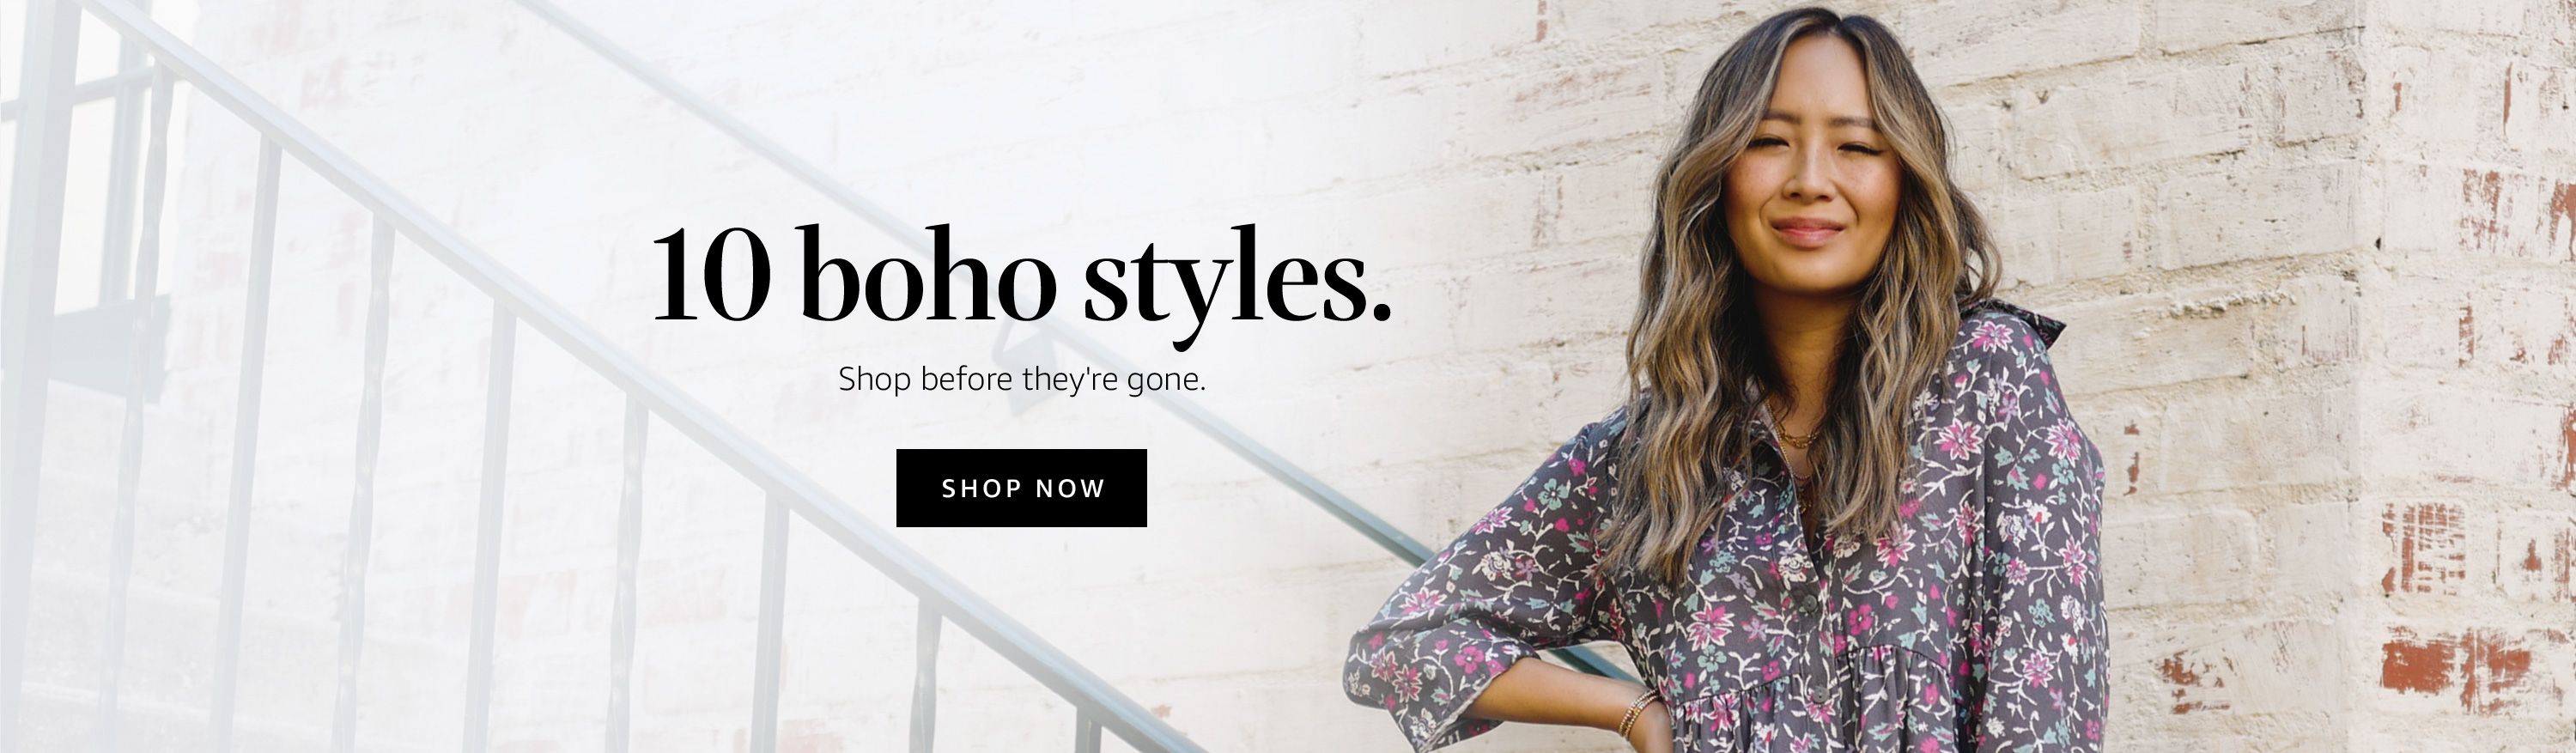 10 boho styles. Shop before they're gone